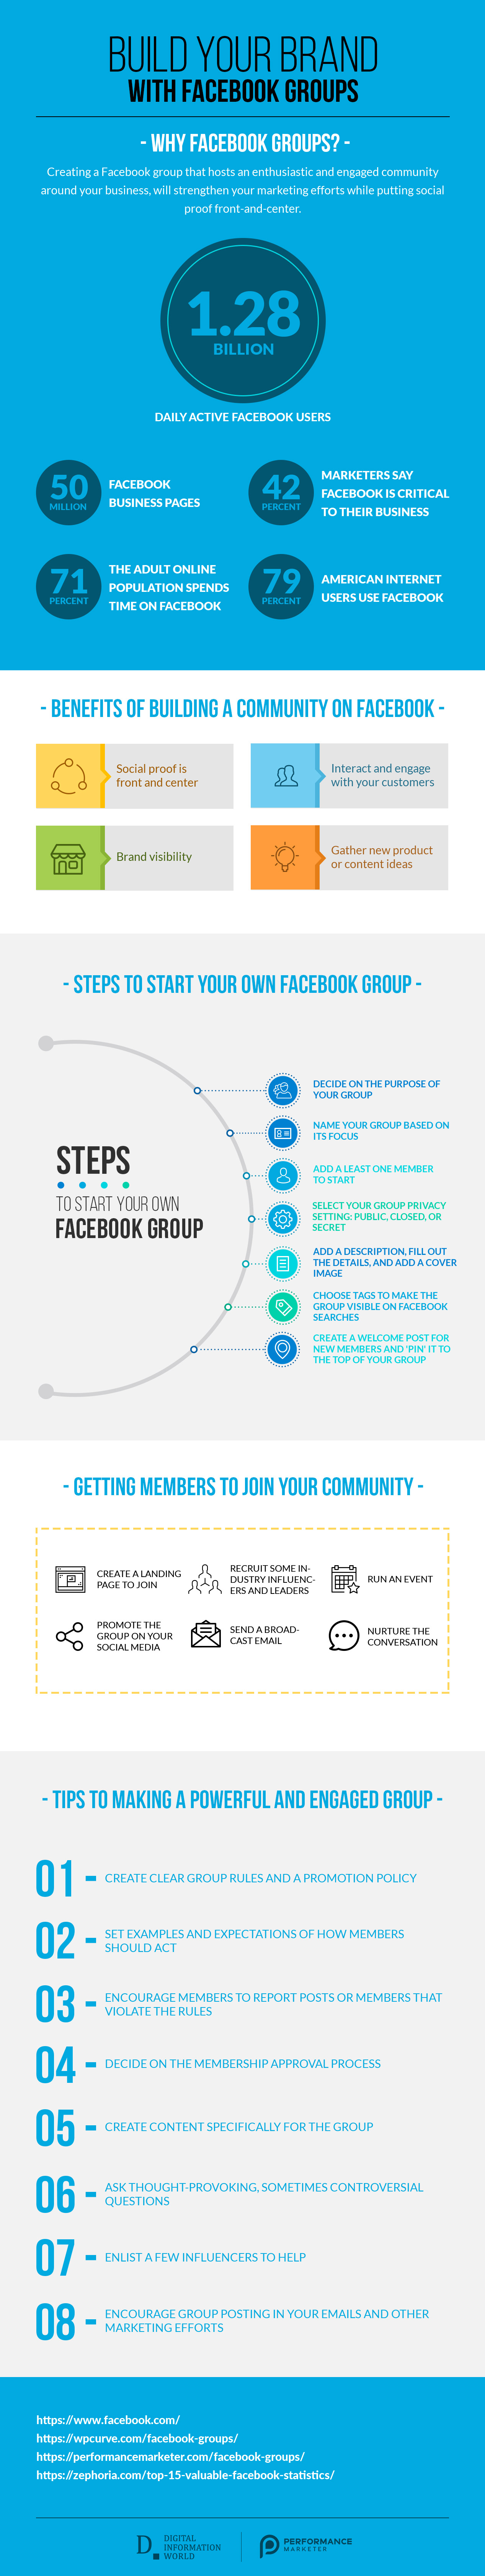 Build a Community Around Your Business with Facebook Groups [Infographic] | Social Media Today